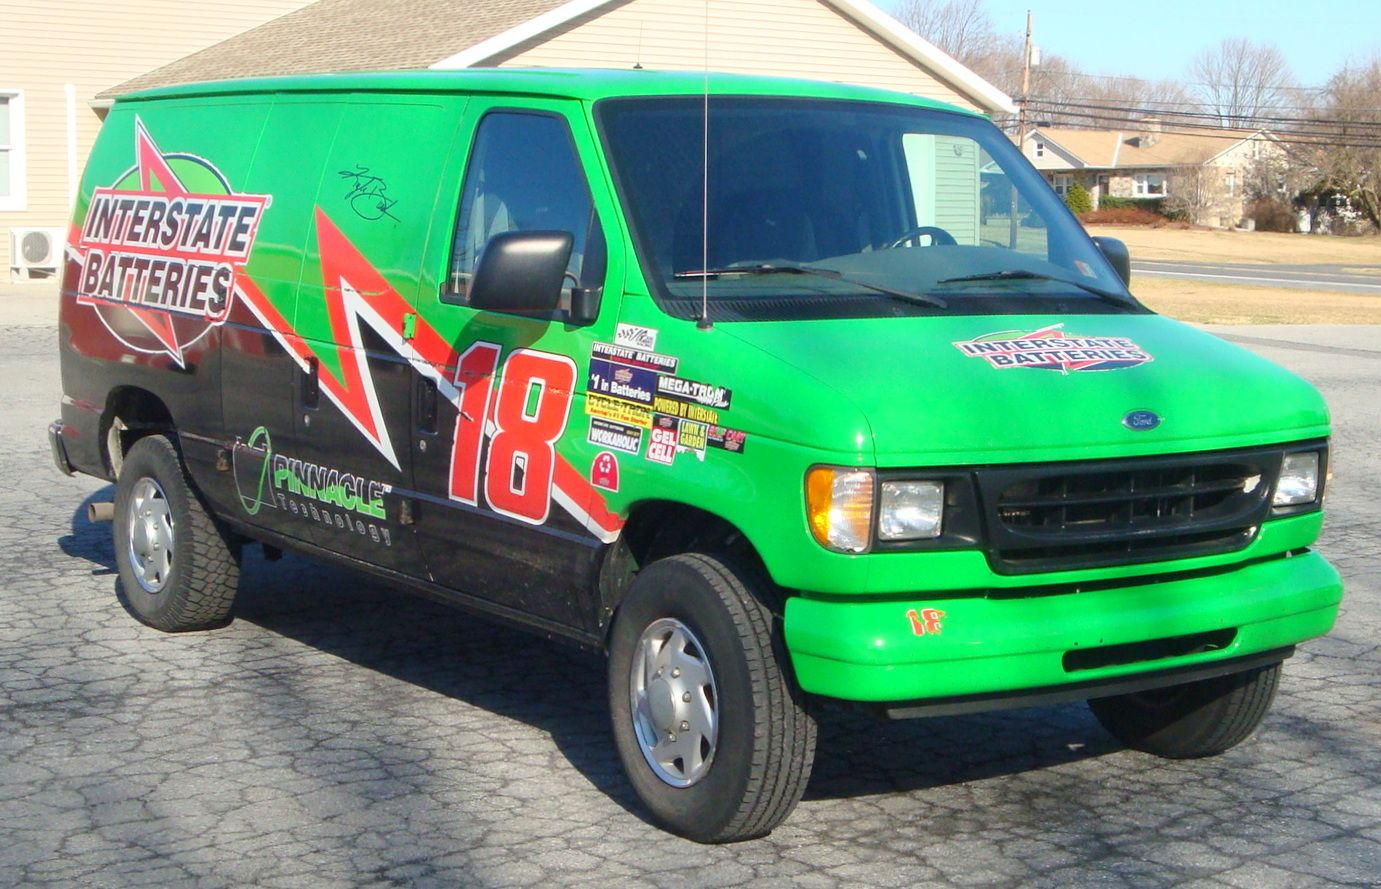 Interstate Battery Of Allentown Ford E250 Commercial Cargo Van Transform Your Commercial Delivery Business Into A Safe Fleet Operati Ford E250 Cargo Van Fleet